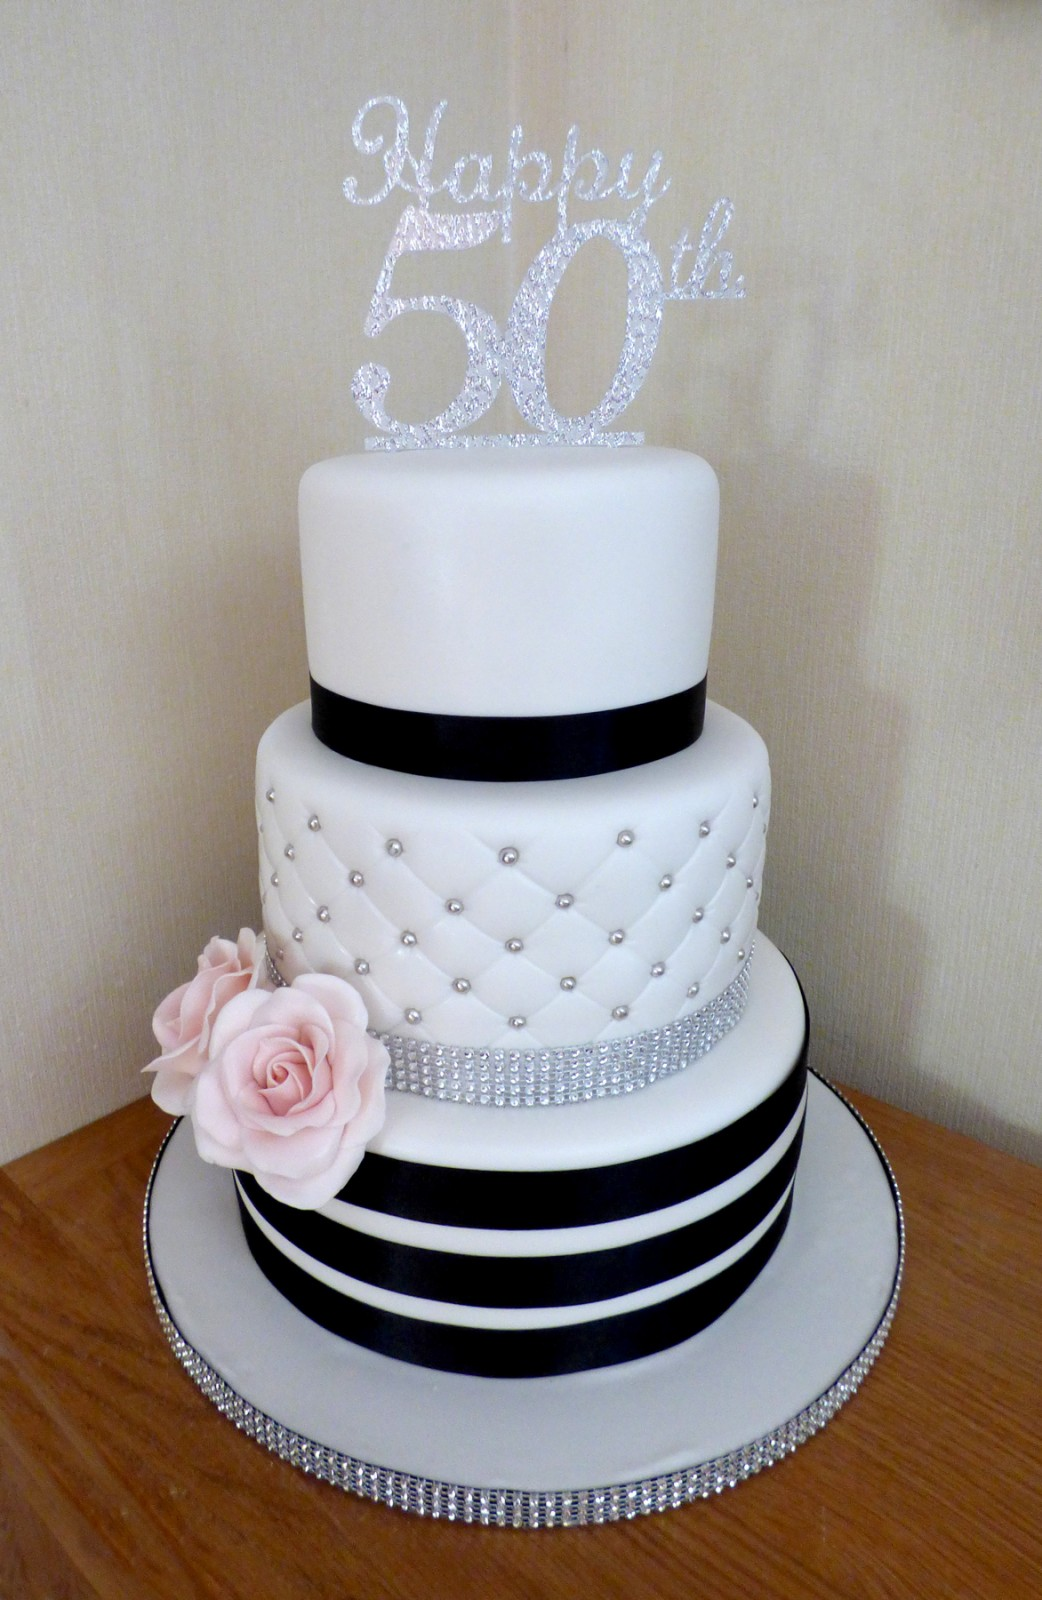 3 Tier Elegant Classic Black And White 50th Birthday Cake